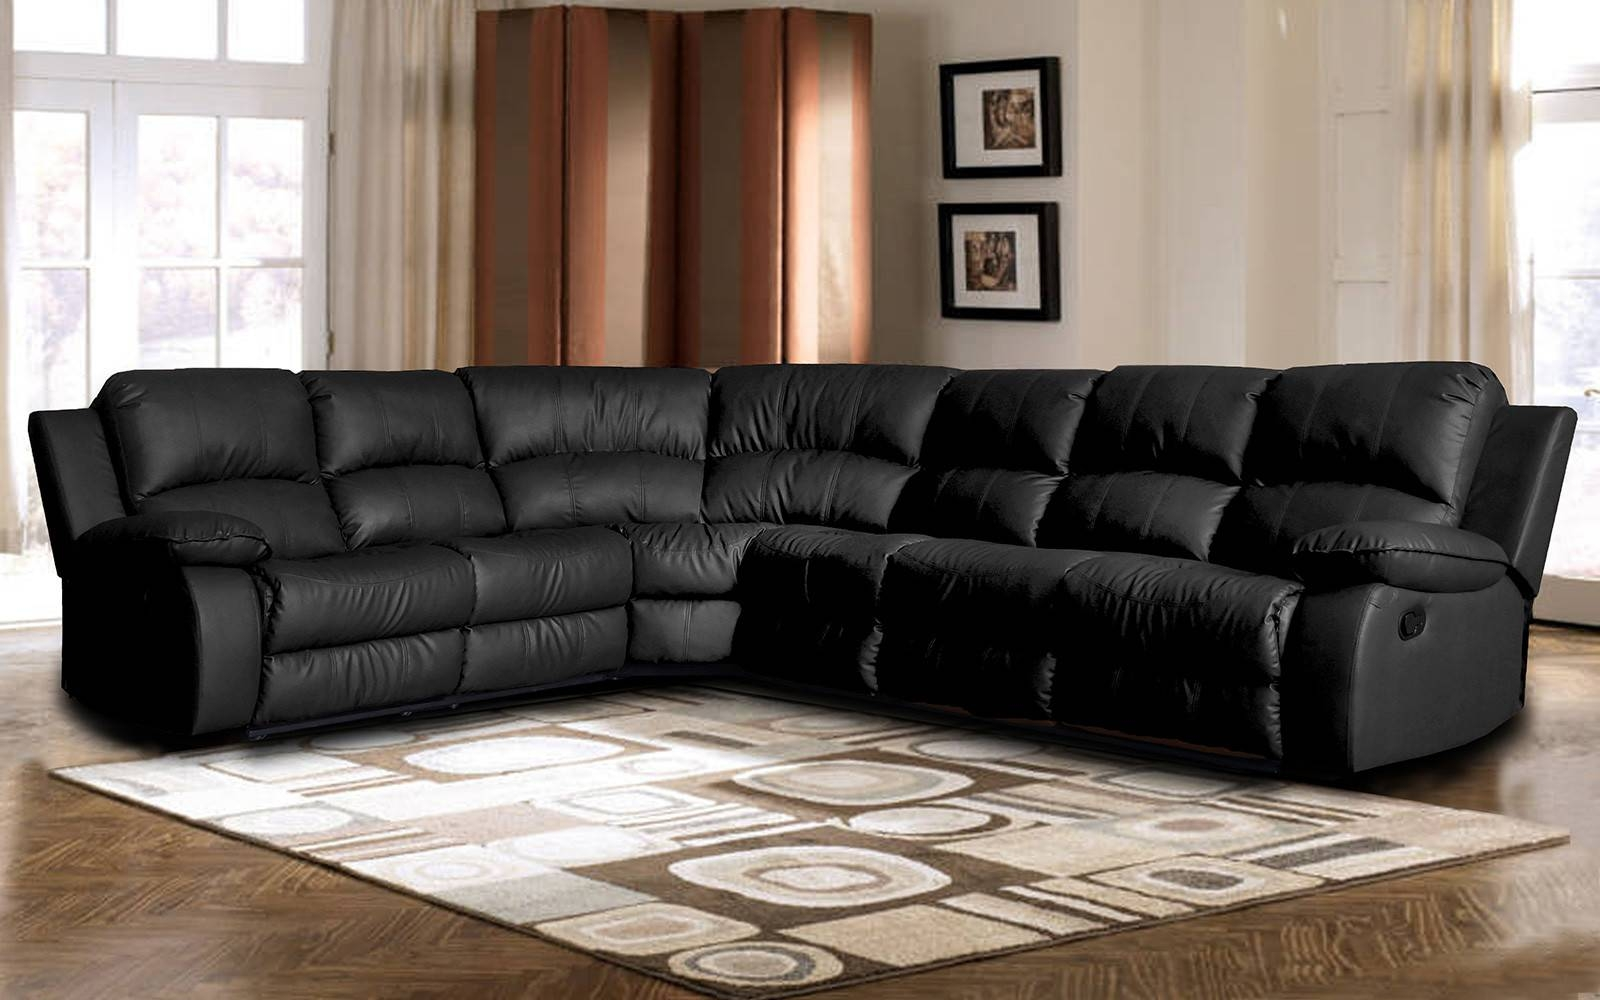 Sectional Sofas And Sectional Couches - Walmart pertaining to C Shaped Sectional Sofa (Image 23 of 30)